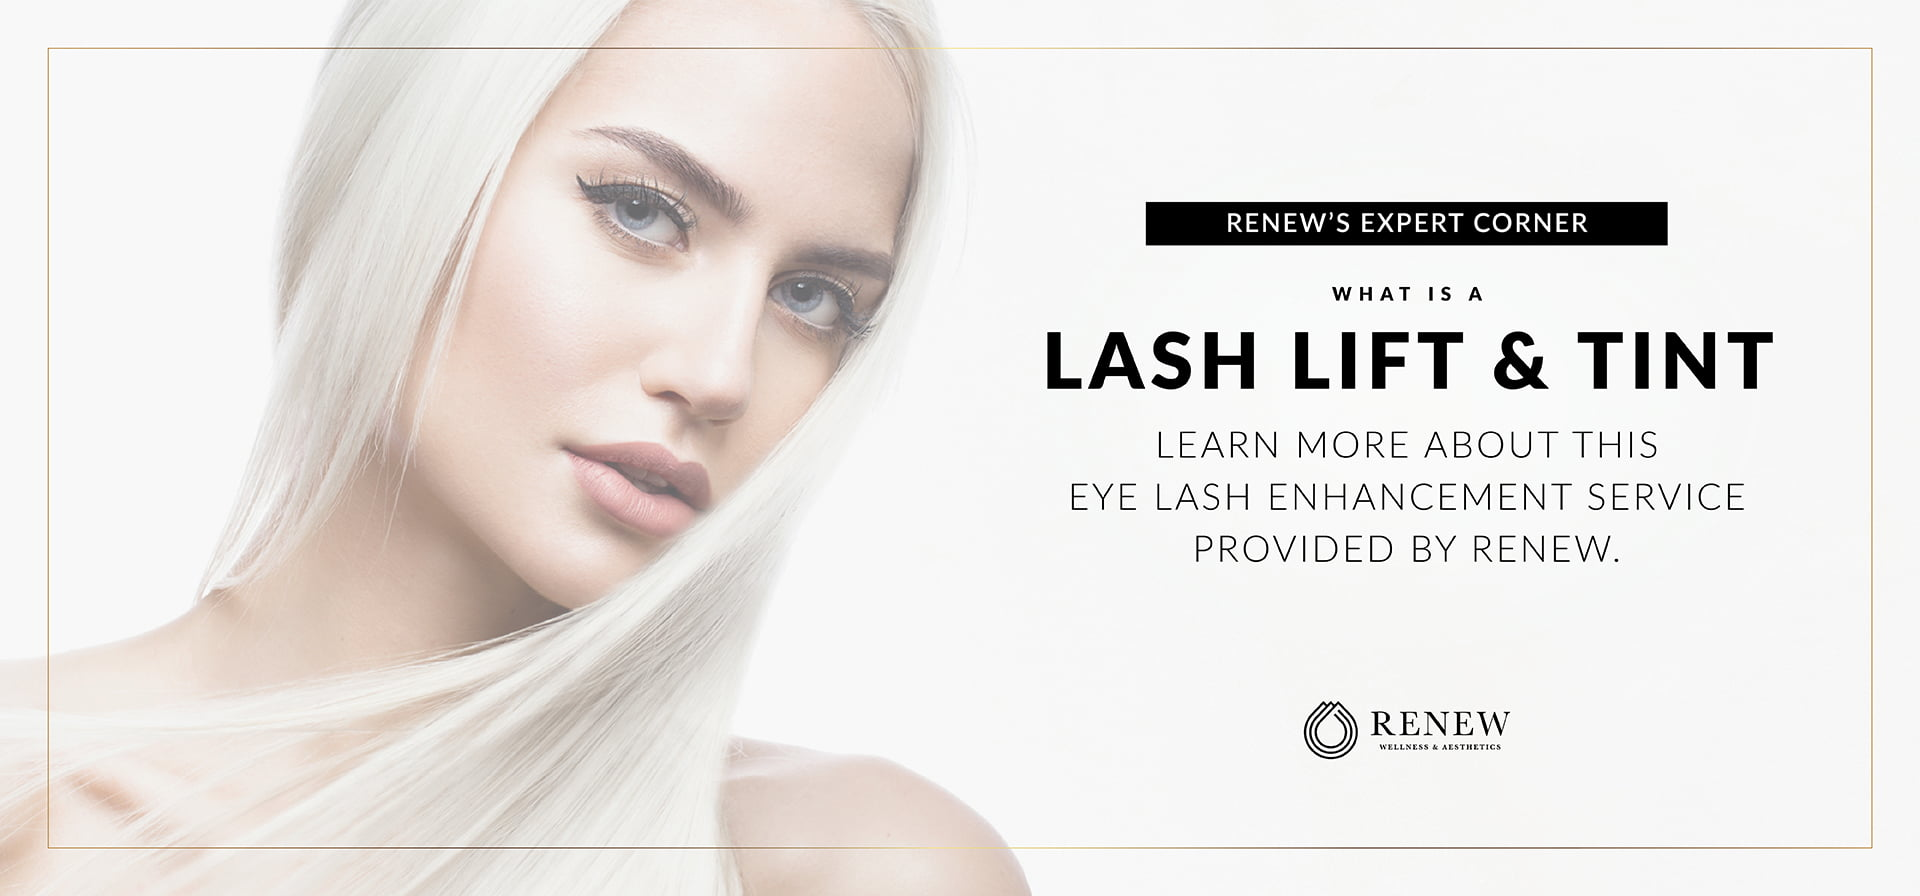 Lash Lift OKC Guide : Everything You Need To Know About Lash Lift and Tint